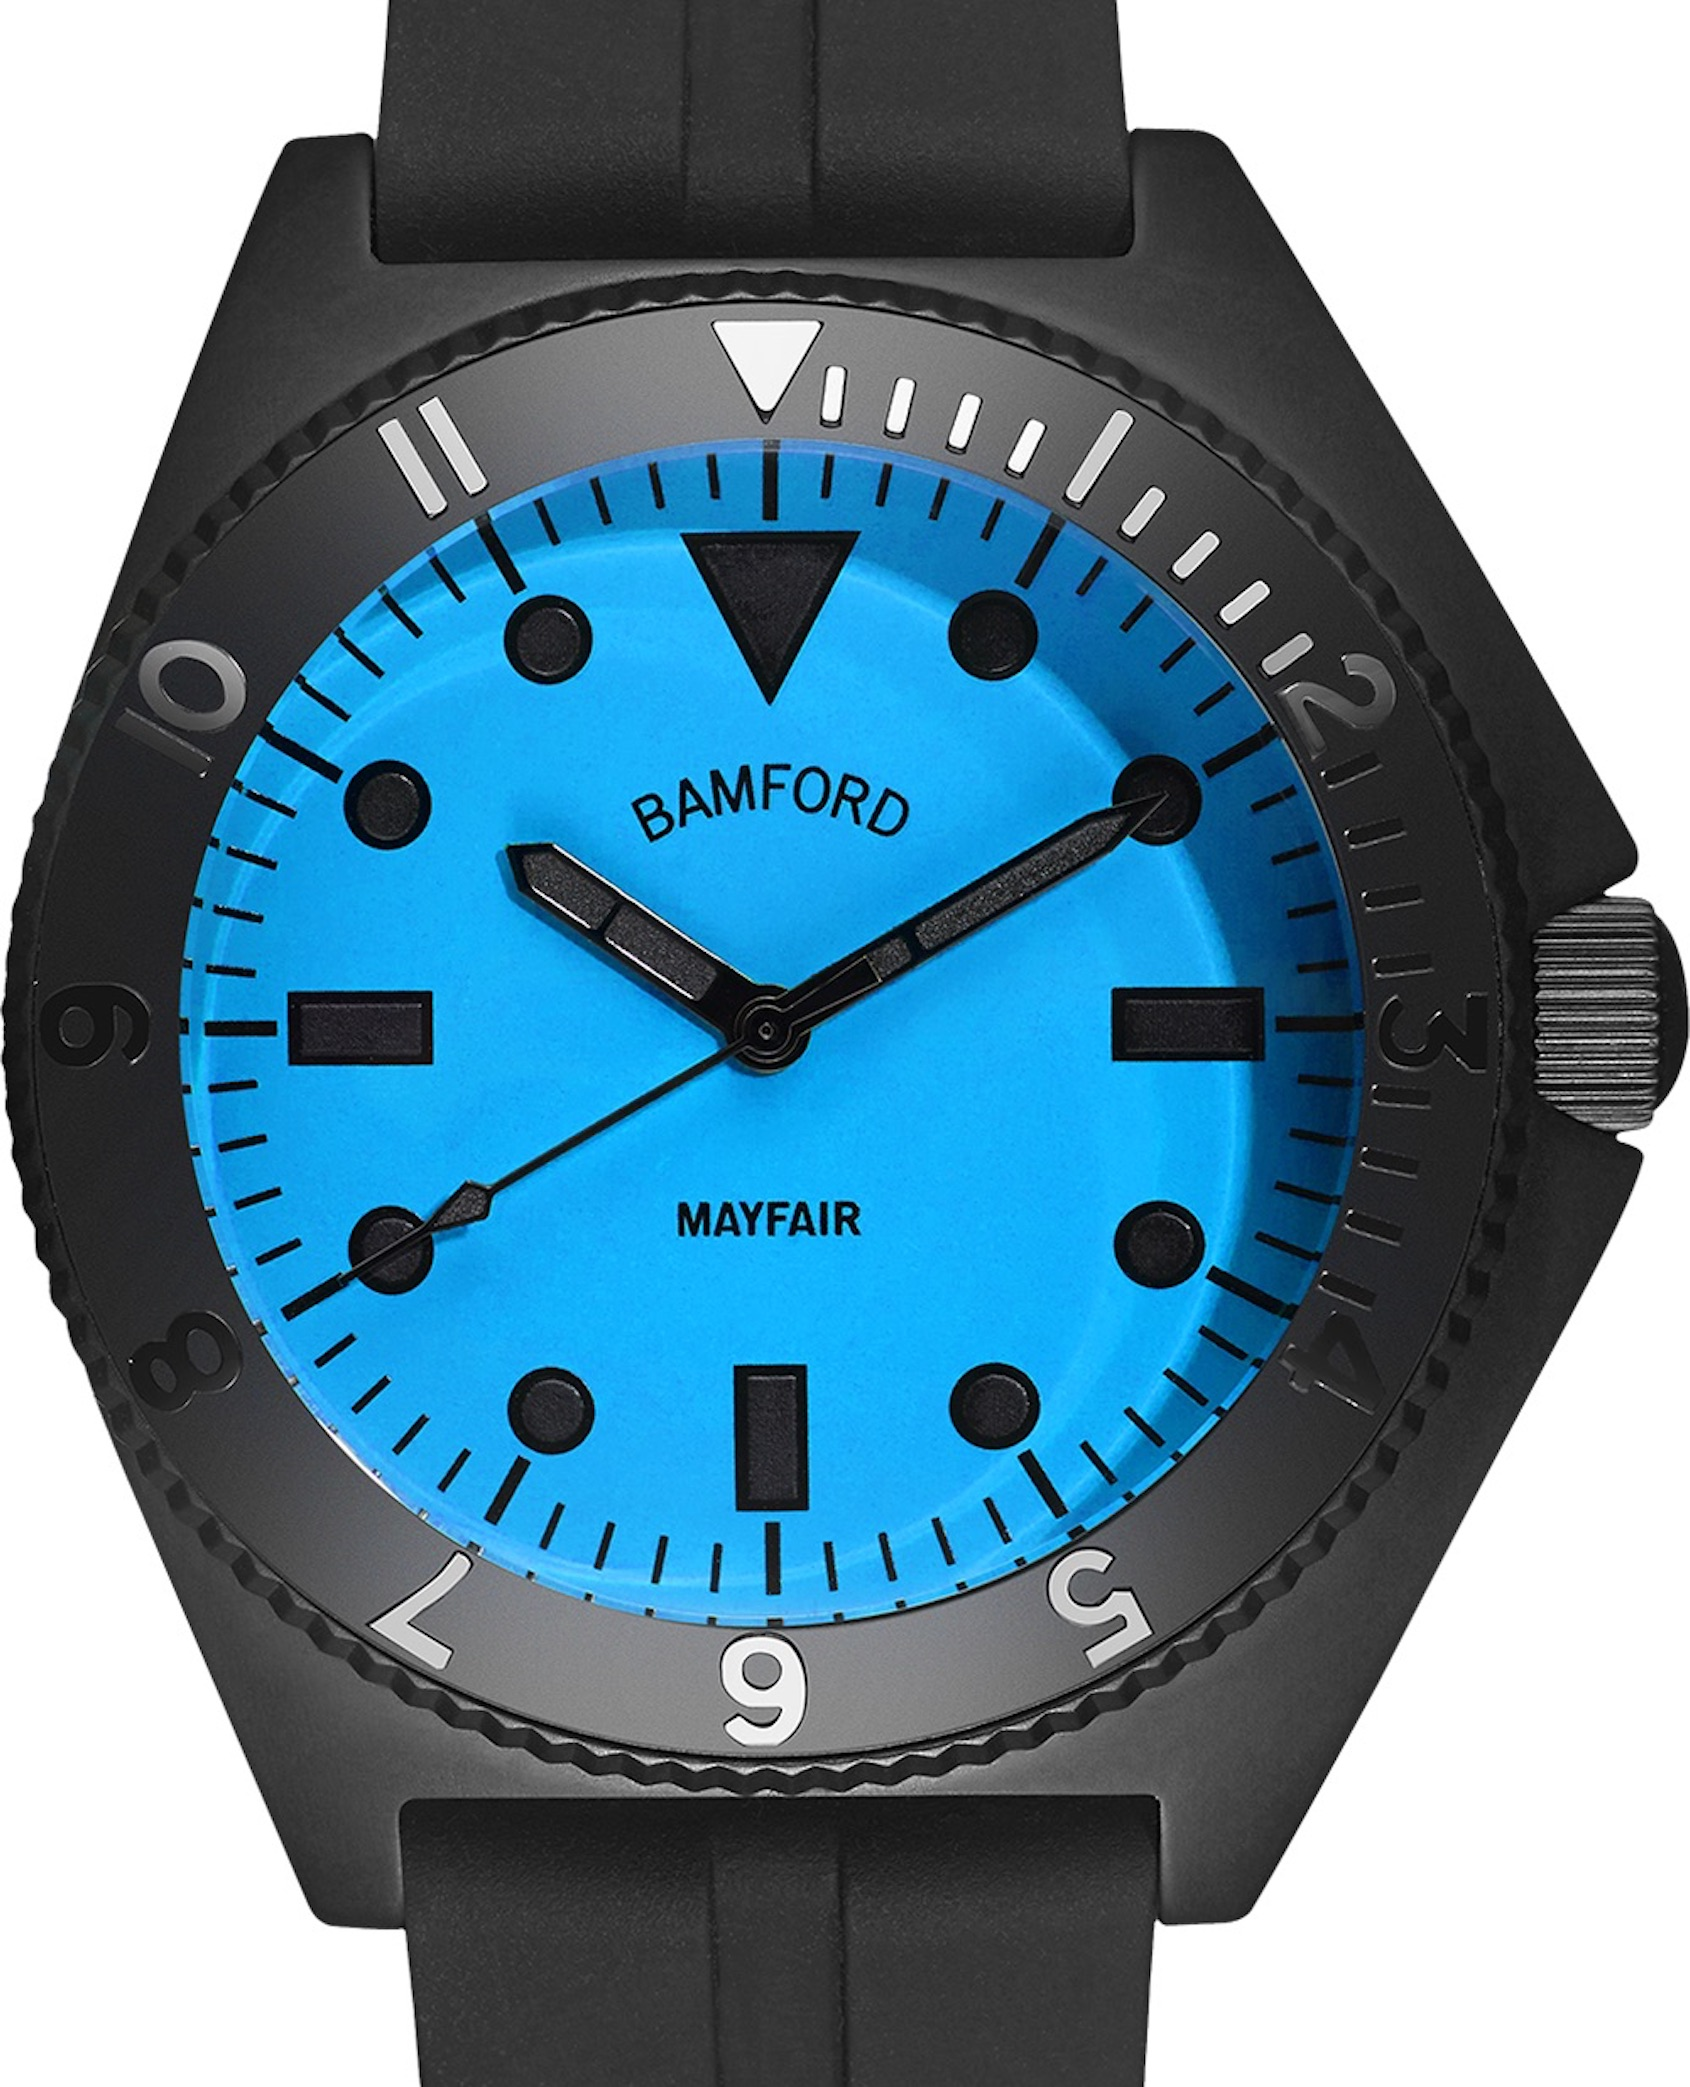 5 Of The Best Budget Watch Brands